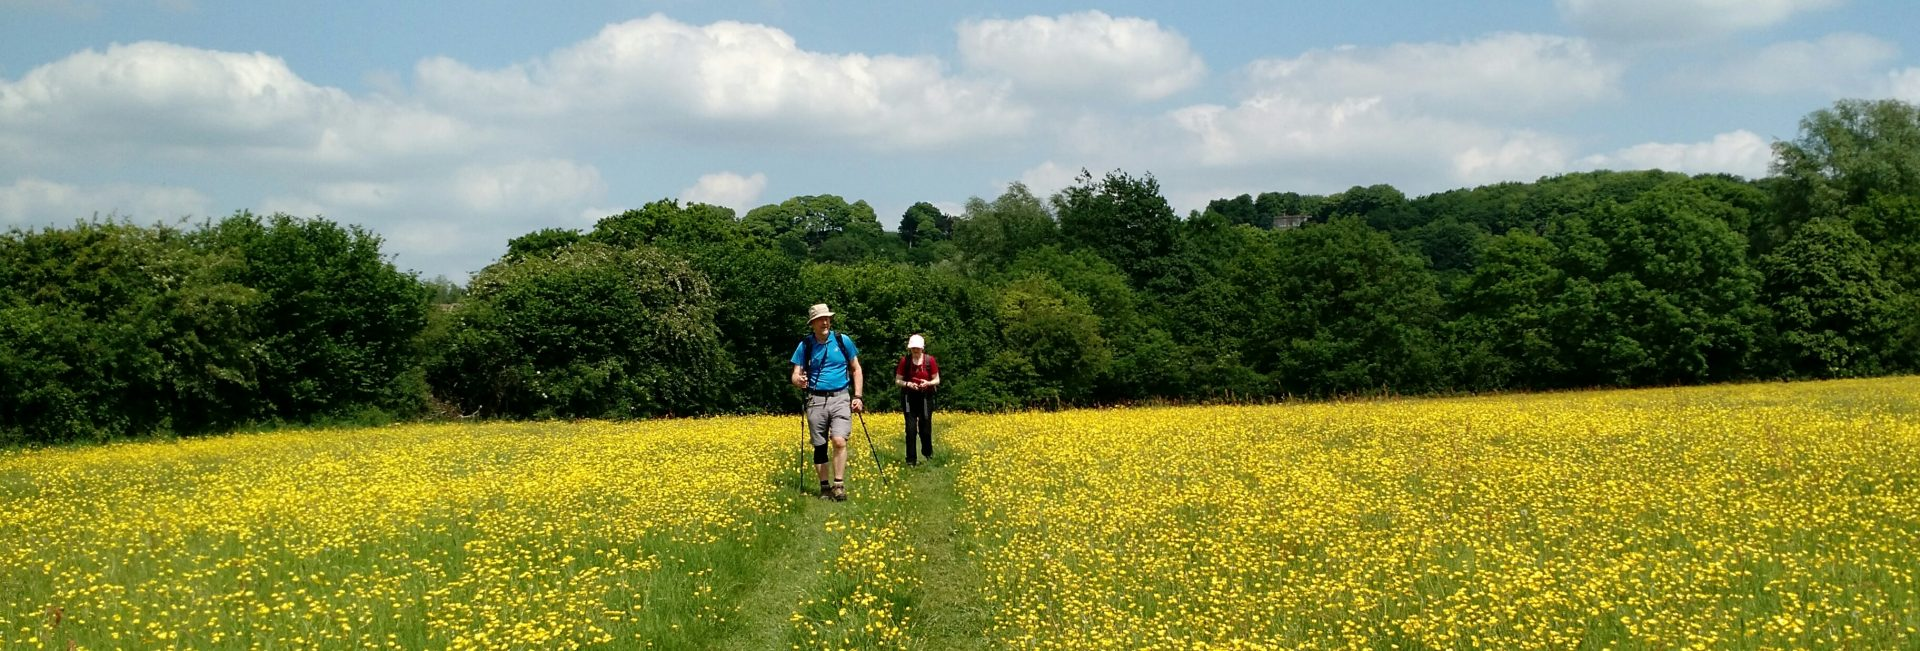 Lots of Buttercups near Sodbury, and Jan and Al, Cotswolds